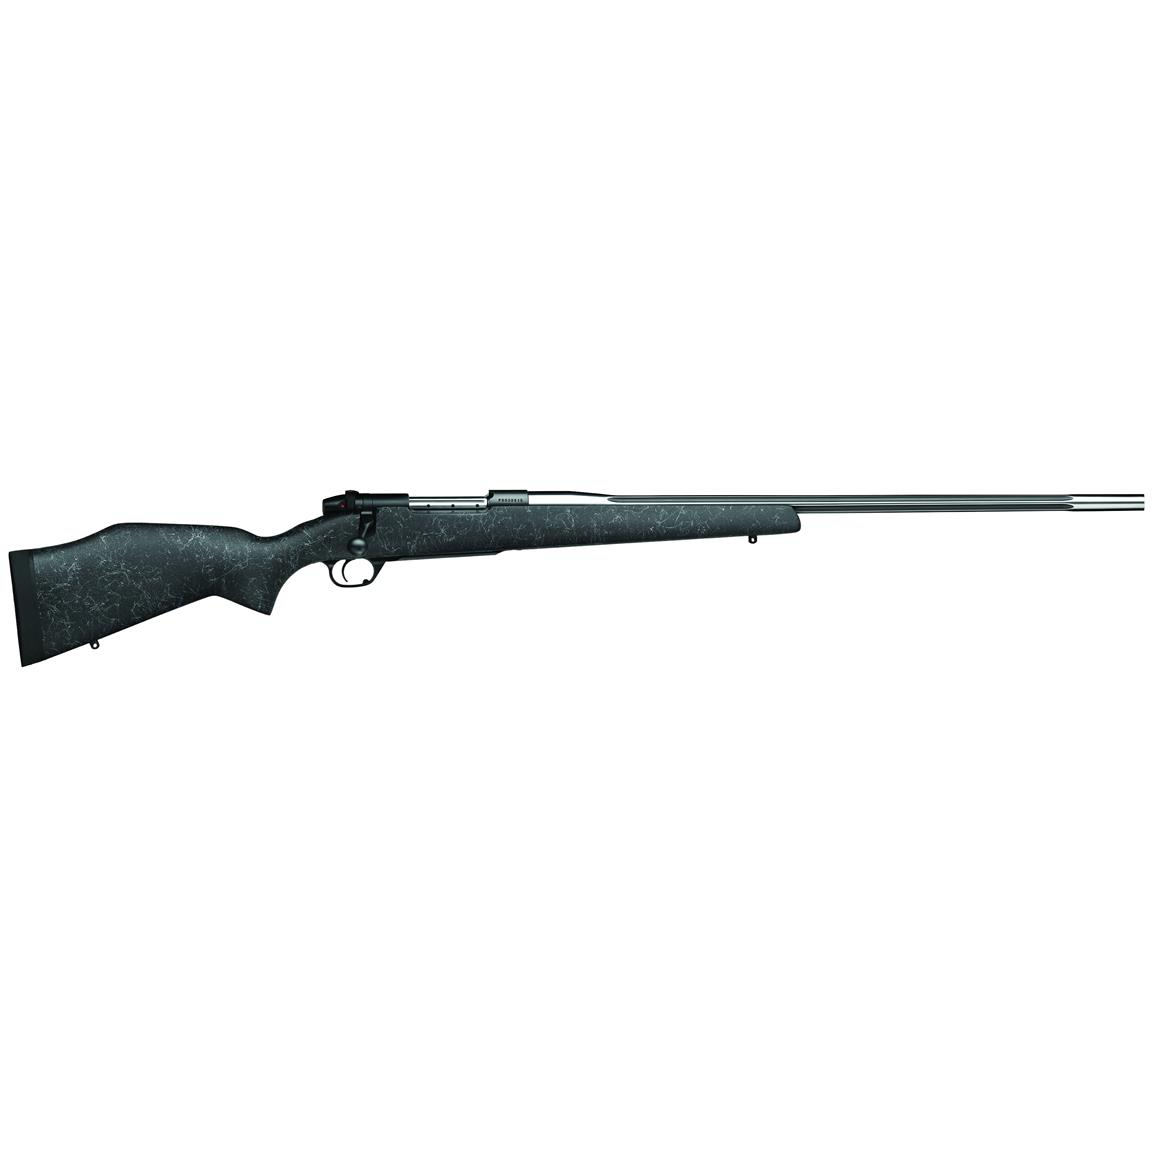 Weatherby Mark V Accumark, Bolt Action, .338-378 Weatherby Magnum, Centerfire, AMM333WR8B, 747115580880, 28 inch Barrel